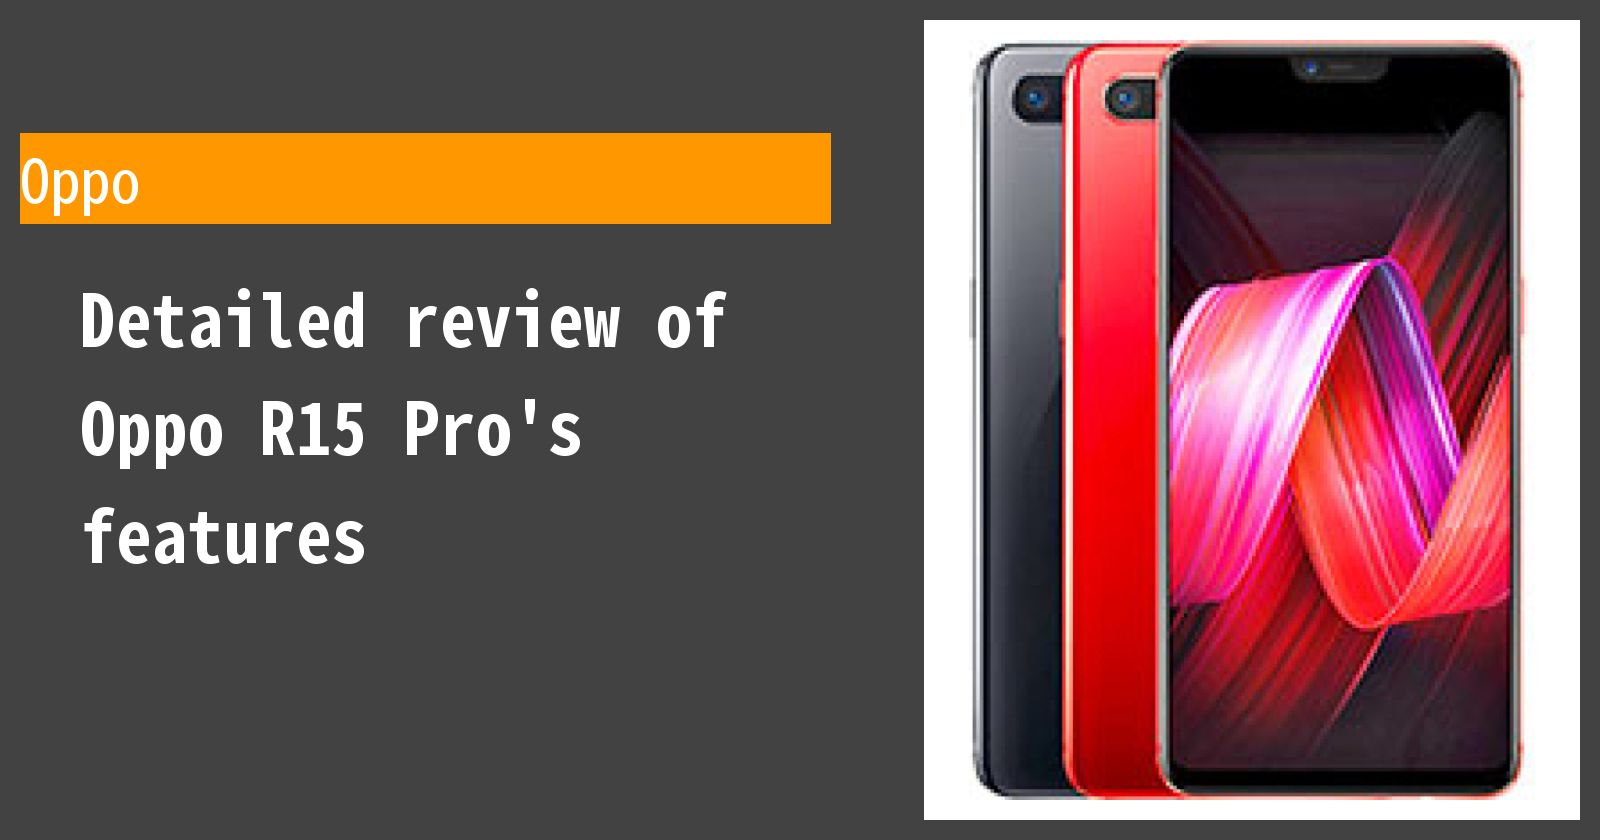 Detailed review of Oppo R15 Pro's features